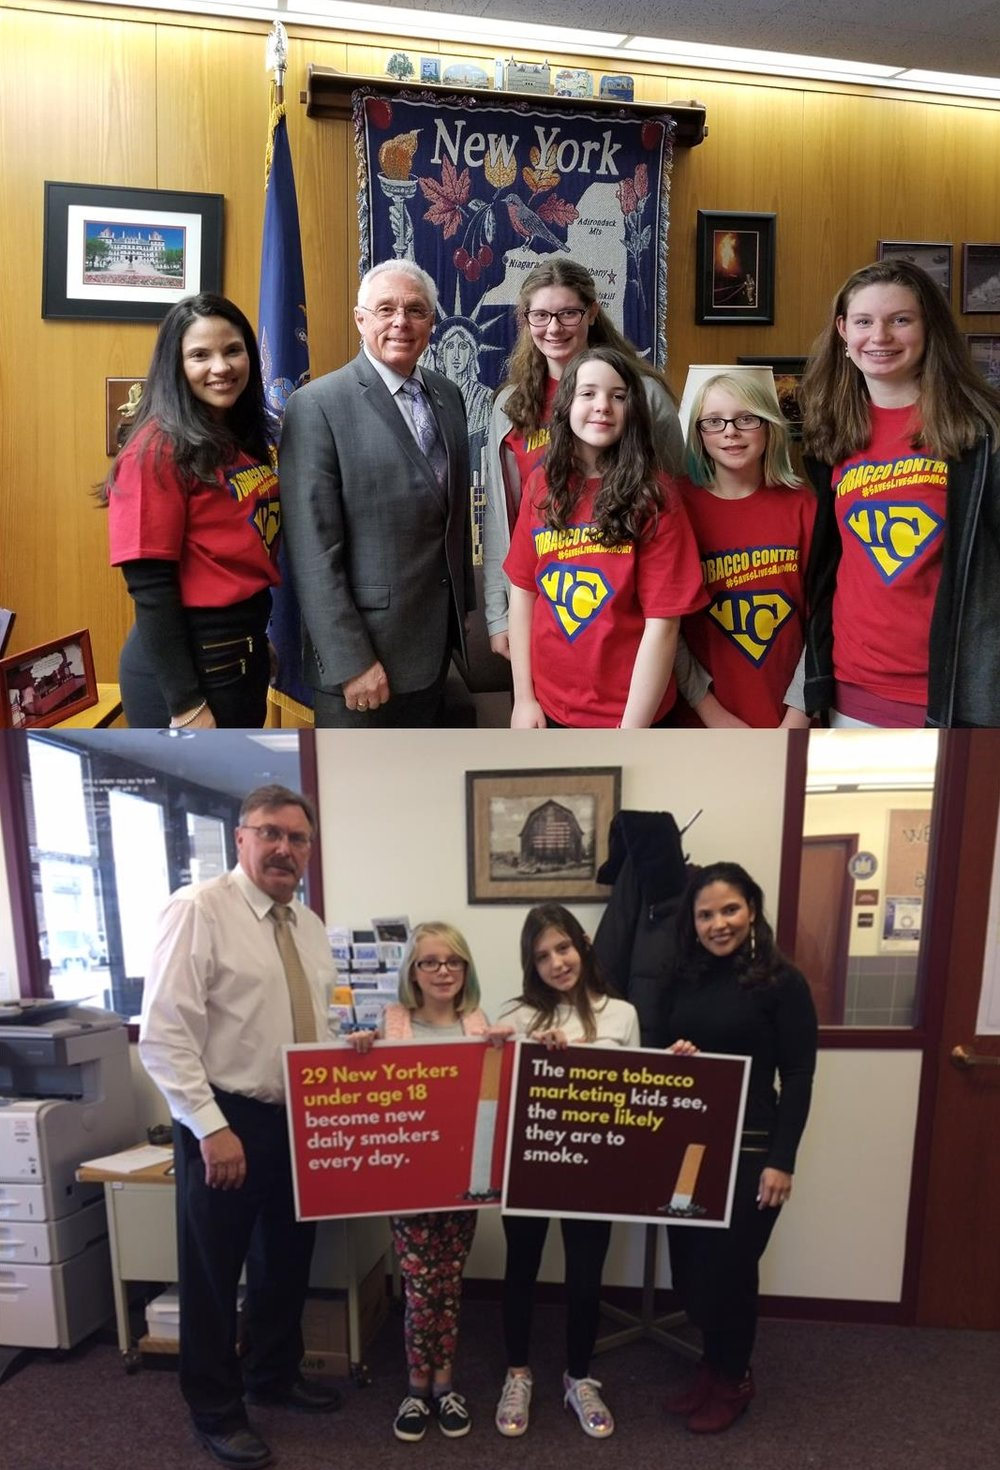 Cherry Valley-Springfield RC check in on Albany - On top, Assemblyman Clifford Crouch is paid a visit from RC youth on a mission to help bring on the first #tobaccofreegeneration Below, RC youth meet with Assemblyman Brian Miller at his New Hartford office.  It appears they have a few messages they wanted to bring to his attention.